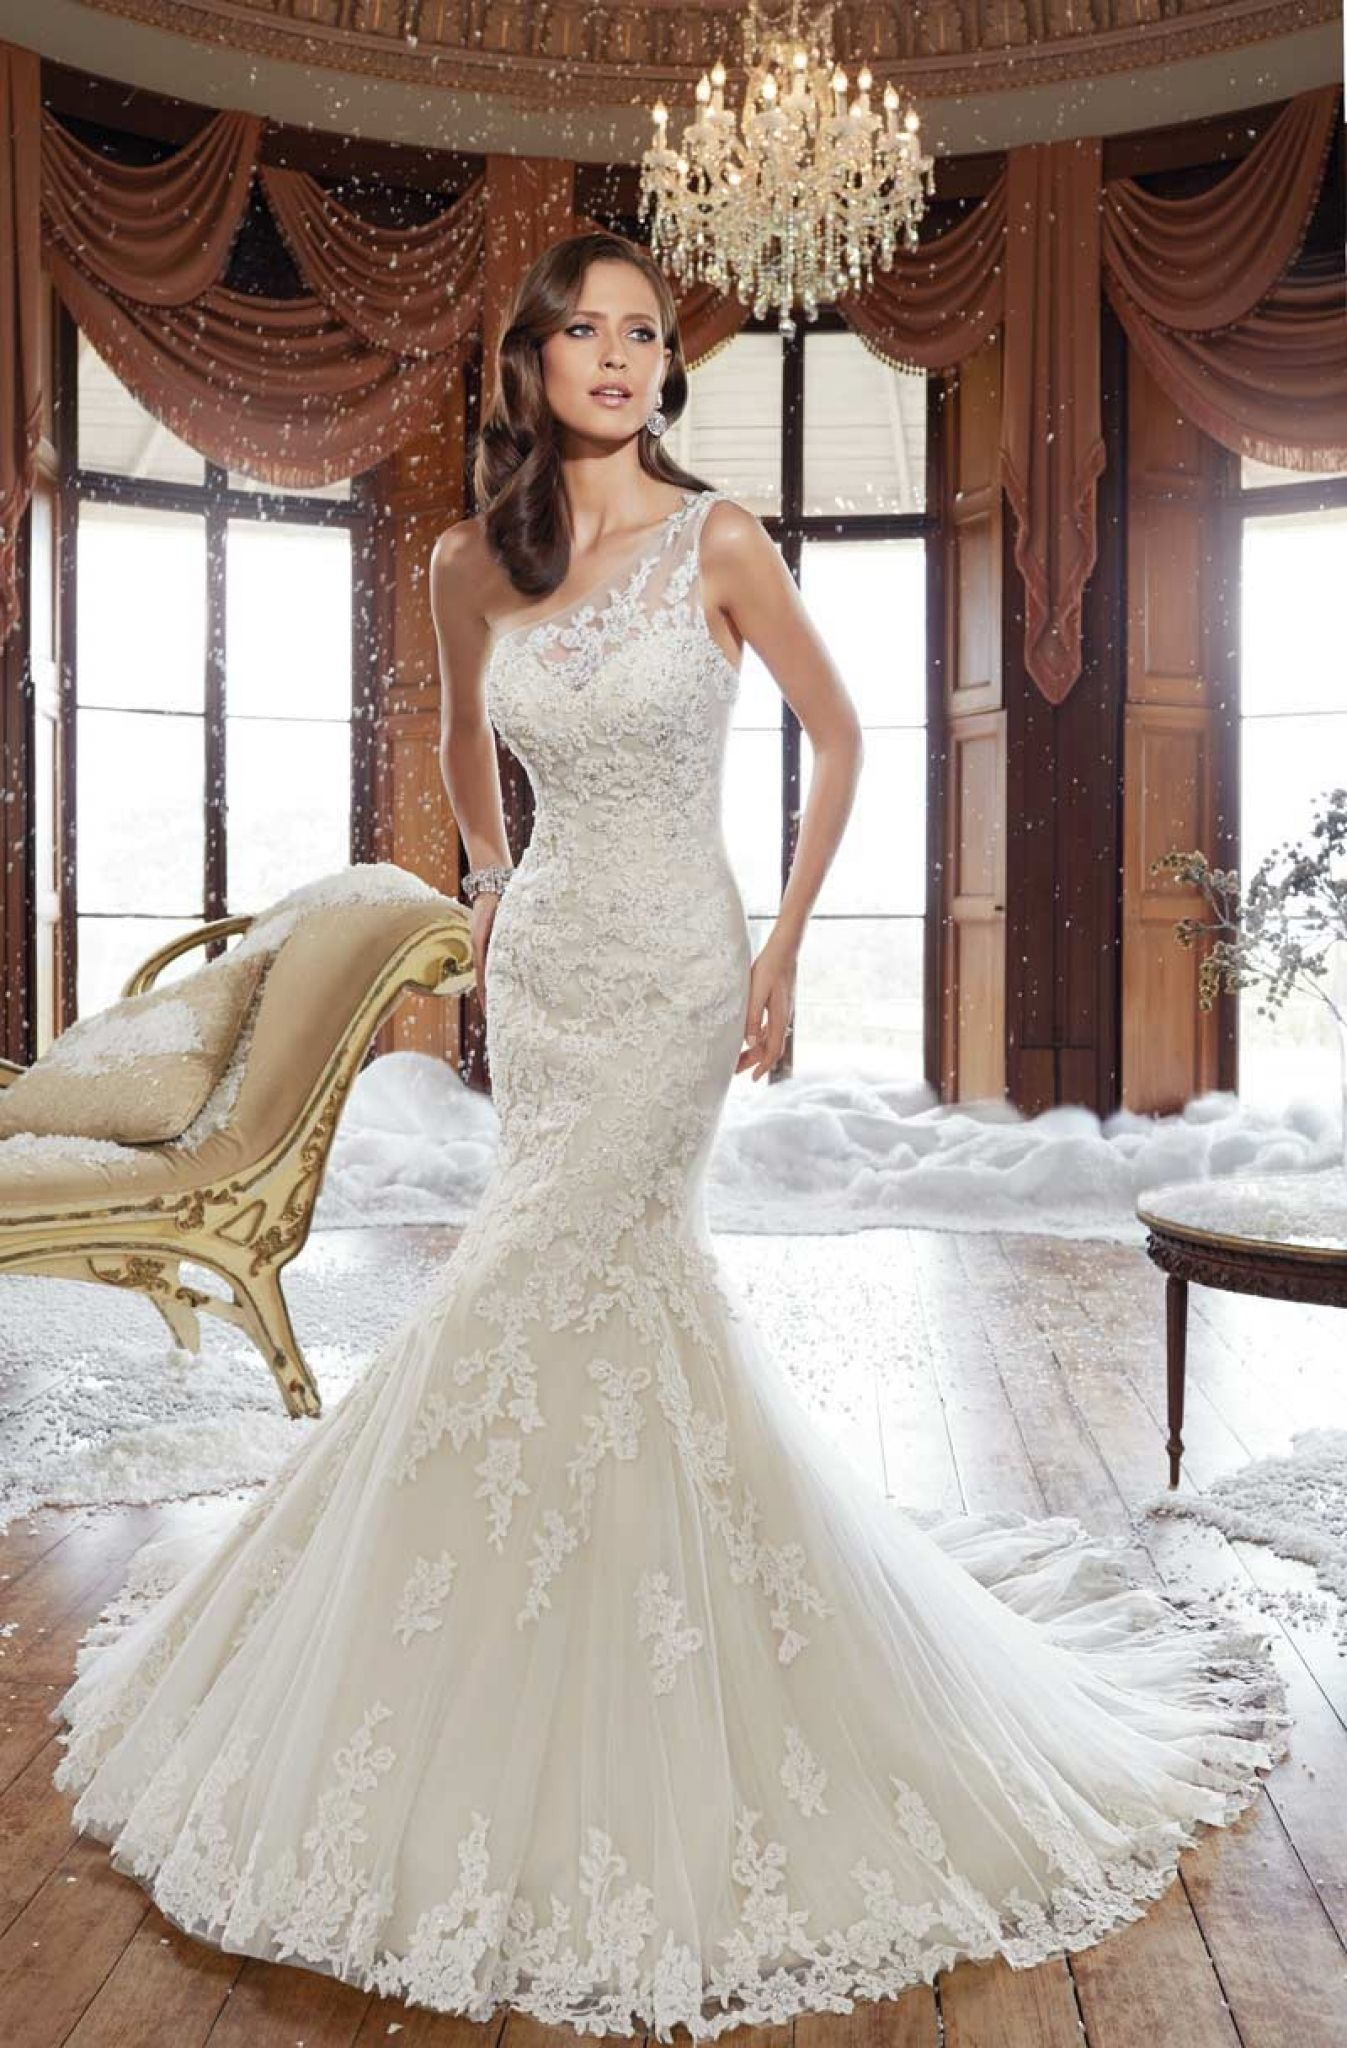 Dress for wedding party female  Pin by Annora on Popular Wedding Dress  Pinterest  Strap wedding